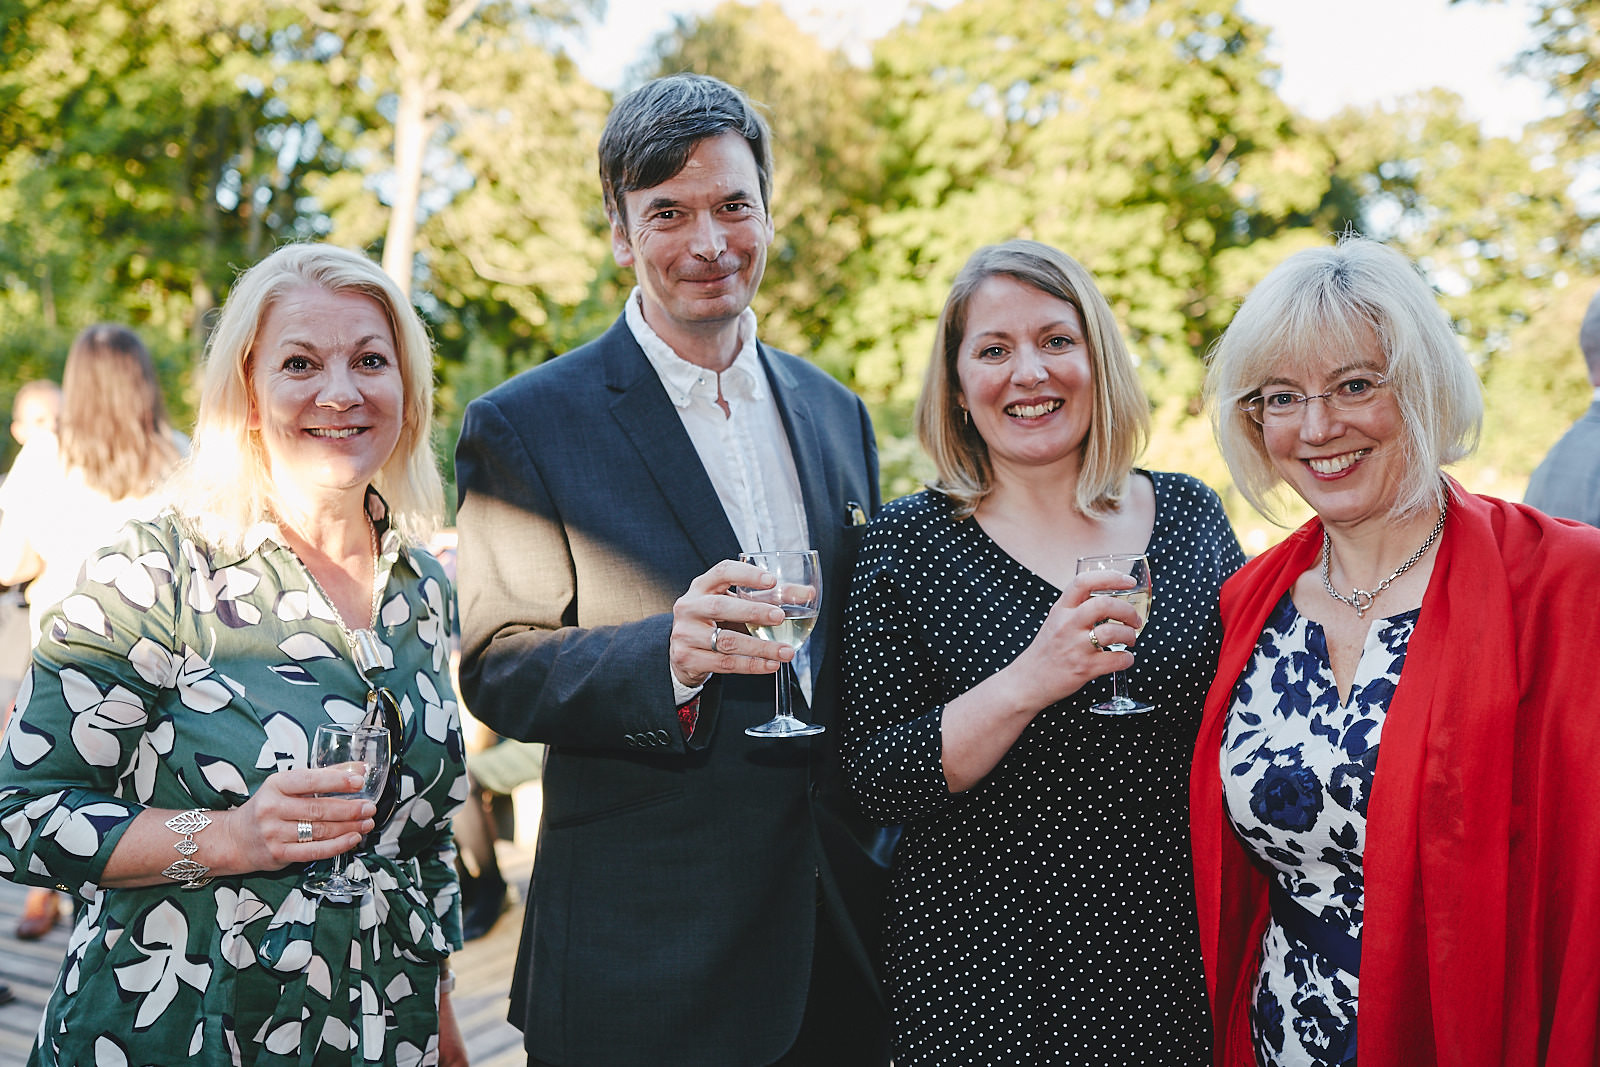 US consulate Edinburgh 4th of July celebration 2018 - 182 web.jpg